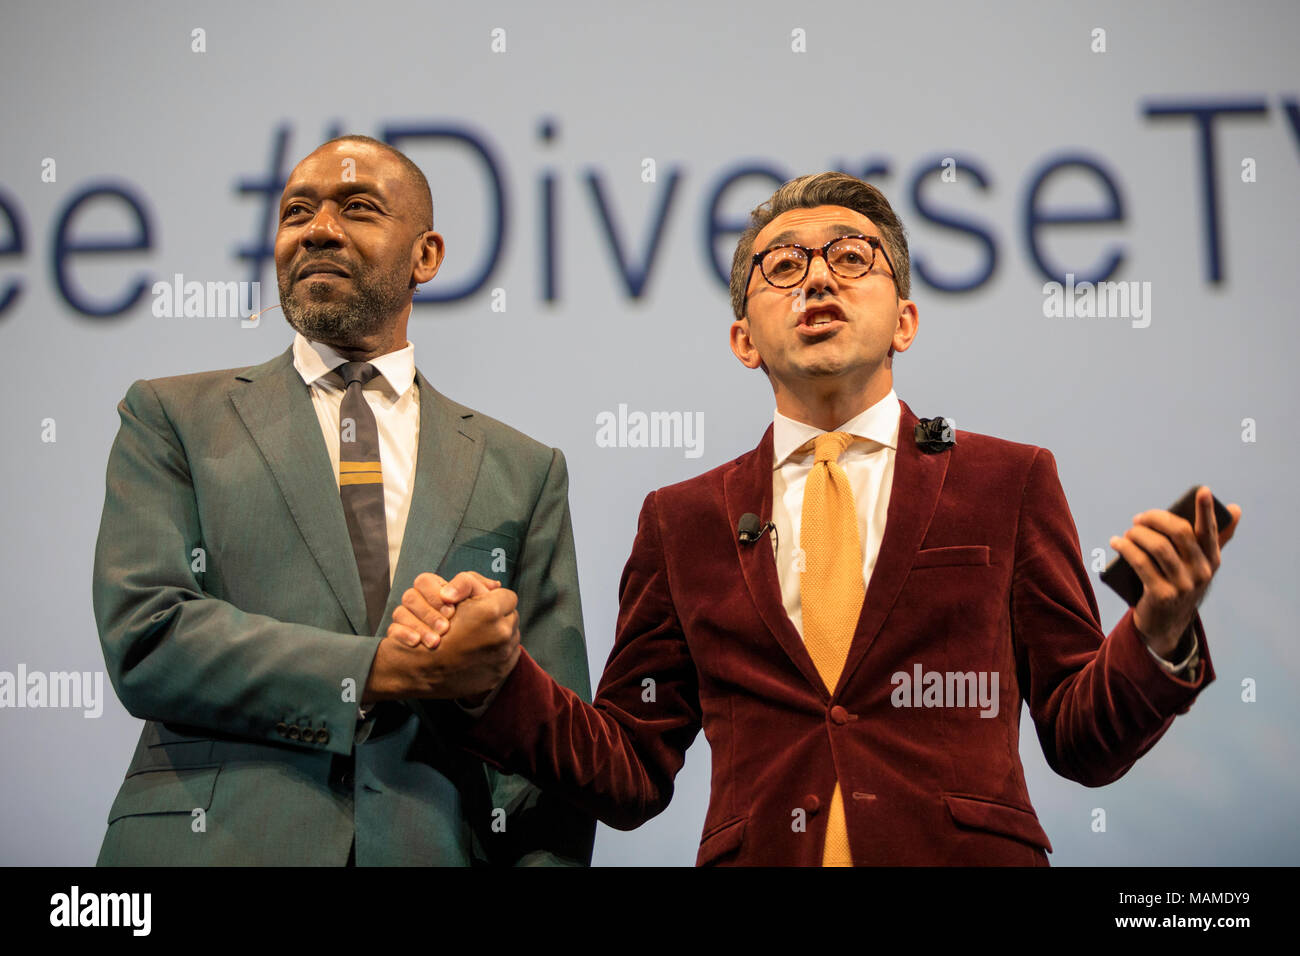 British comedian, writer and actor Sir Lenny Henry calls for tax breaks to increase diversity in TV. MIPCOM Oct. 18 2017, Cannes, France - Stock Image